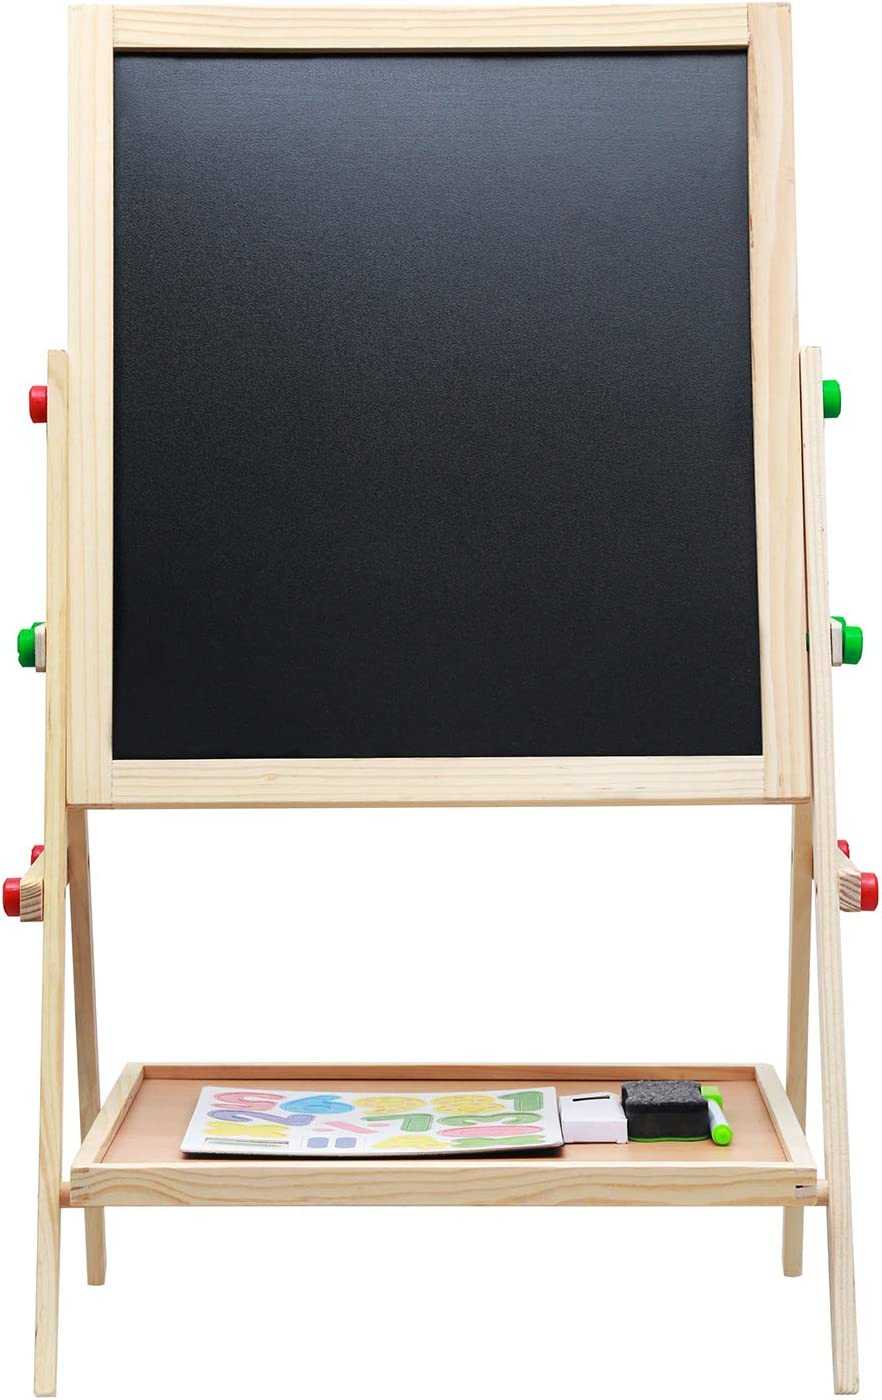 kiact Kids Wooden Easel Magnetic Whiteboard and Chalkboard Double Sided Drawing Board Adjustable Height with Lower Storage Tray Standing Easel Art Supplies Accessories